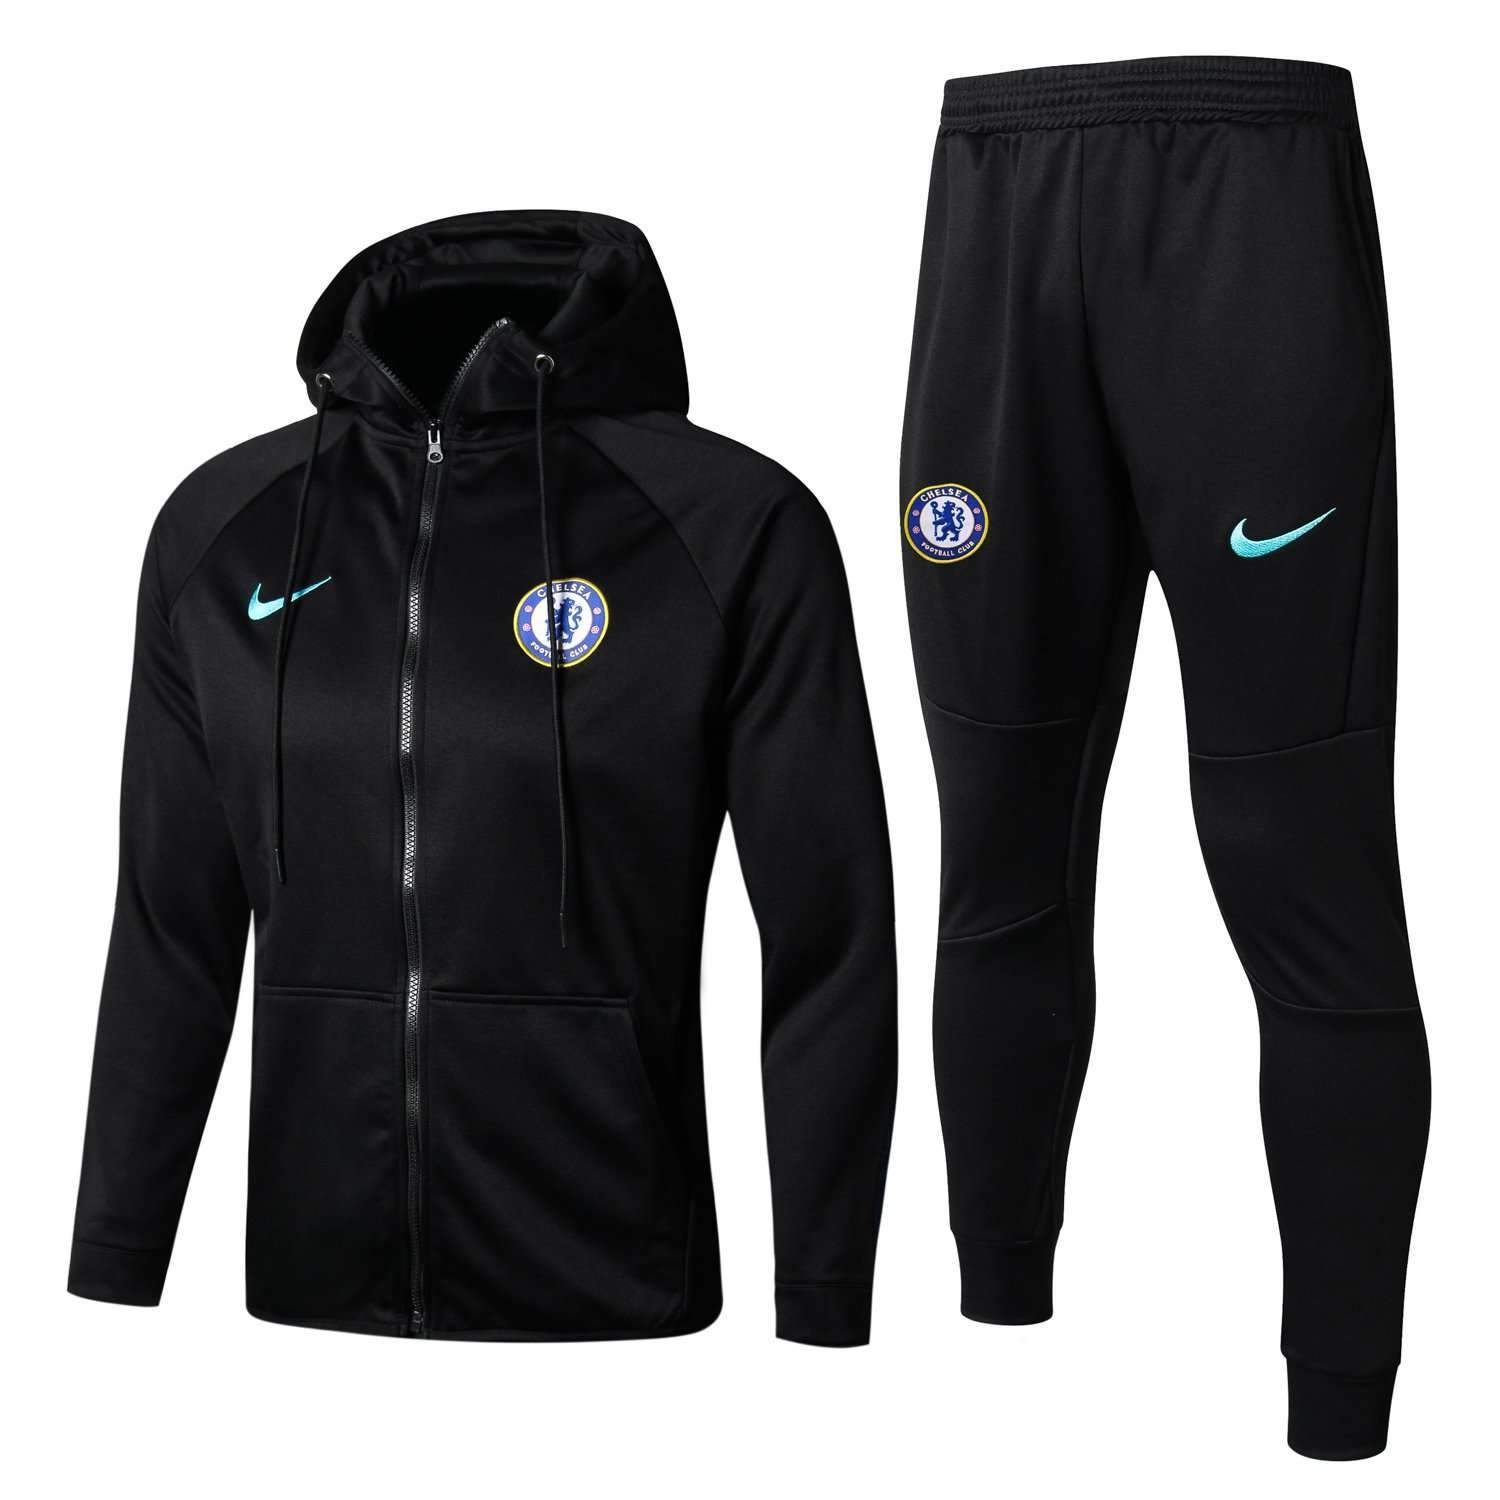 pick up cc070 568d1 Chelsea F.C. Football club Black Nike 2017-18 Pre-Match Replica Pullover  TRAINING Zip Casual TOPS TRACKSUIT FÚTBOL CALCIO SOCCER FUSSBALL BNWT Men's  ...